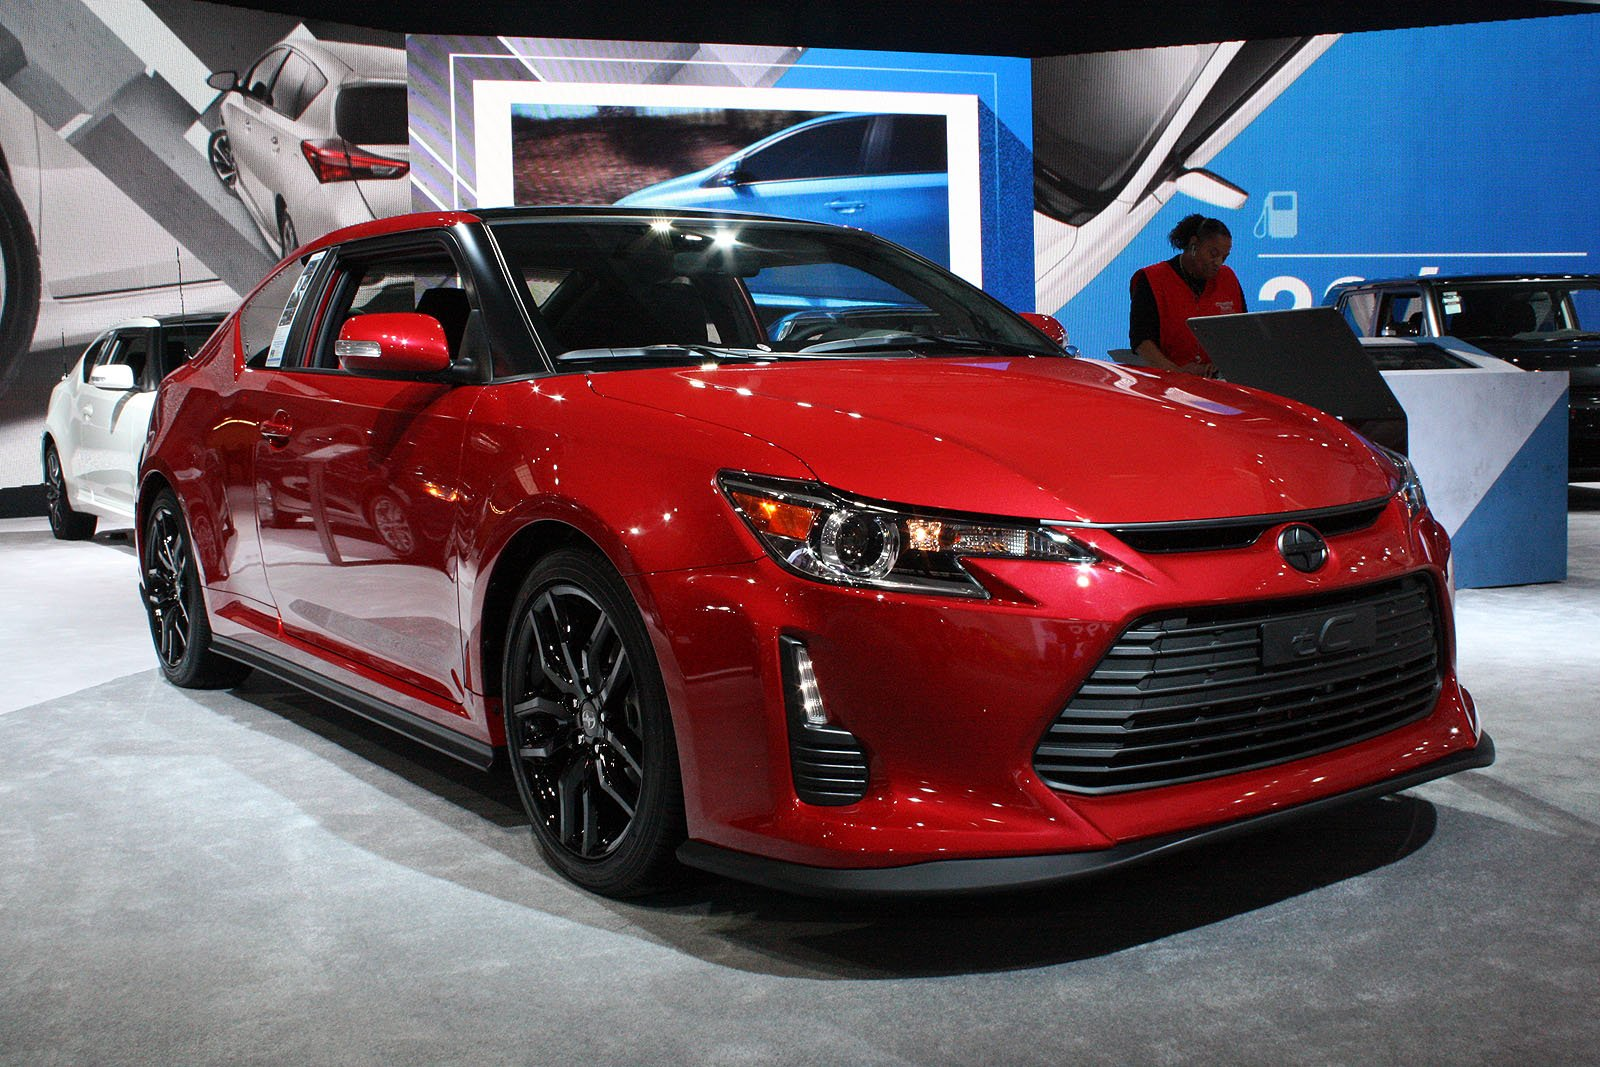 2017 scion tc release series 10 0 bids farewell to brand news. Black Bedroom Furniture Sets. Home Design Ideas